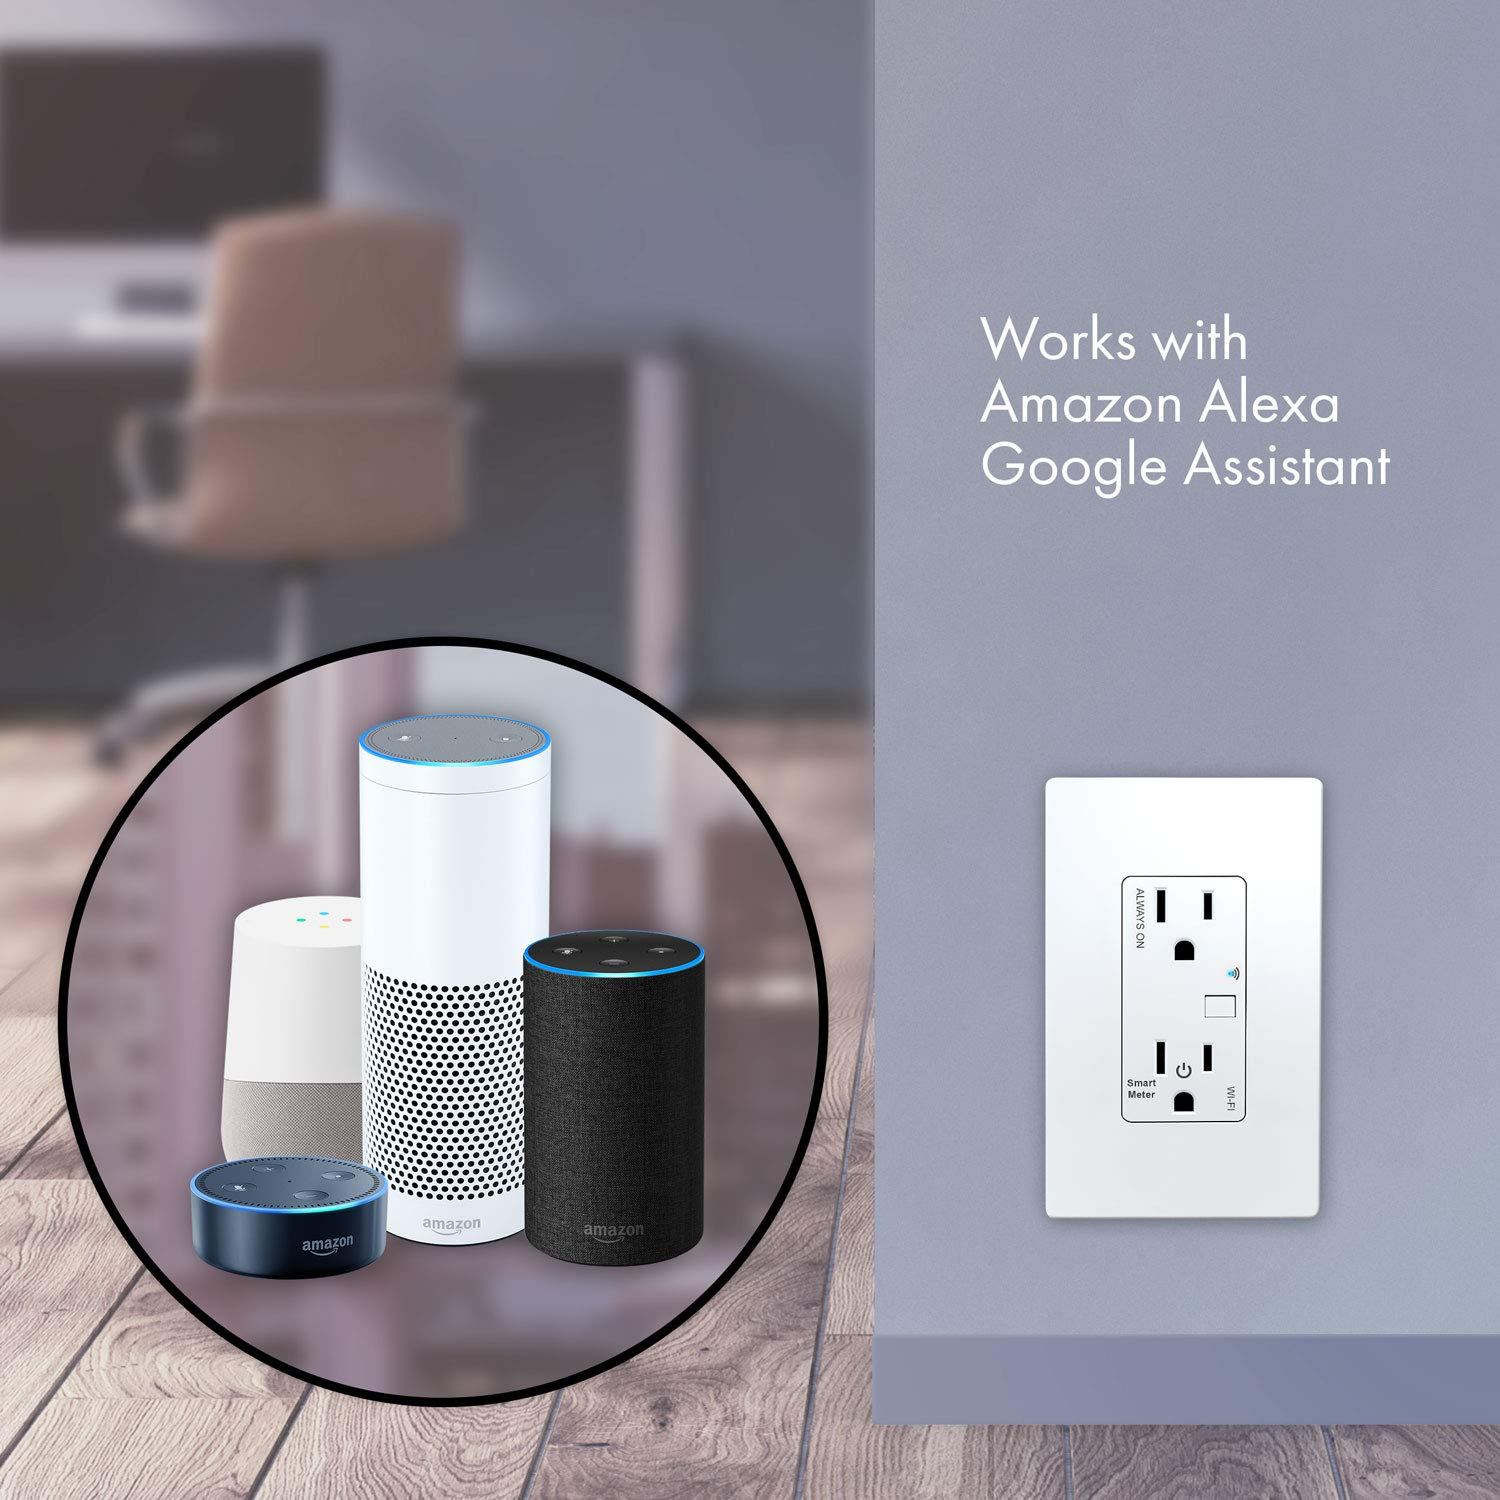 TU2153A HTC /& other Smartphones Samsung Galaxy S9//S8//S7 Compatible with iPhone XS//MAX//XR//X//8 LG White 6 Pack UL Listed TOPGREENER 3.1A USB Wall Outlet Charger 15A Tamper-Resistant Receptacles